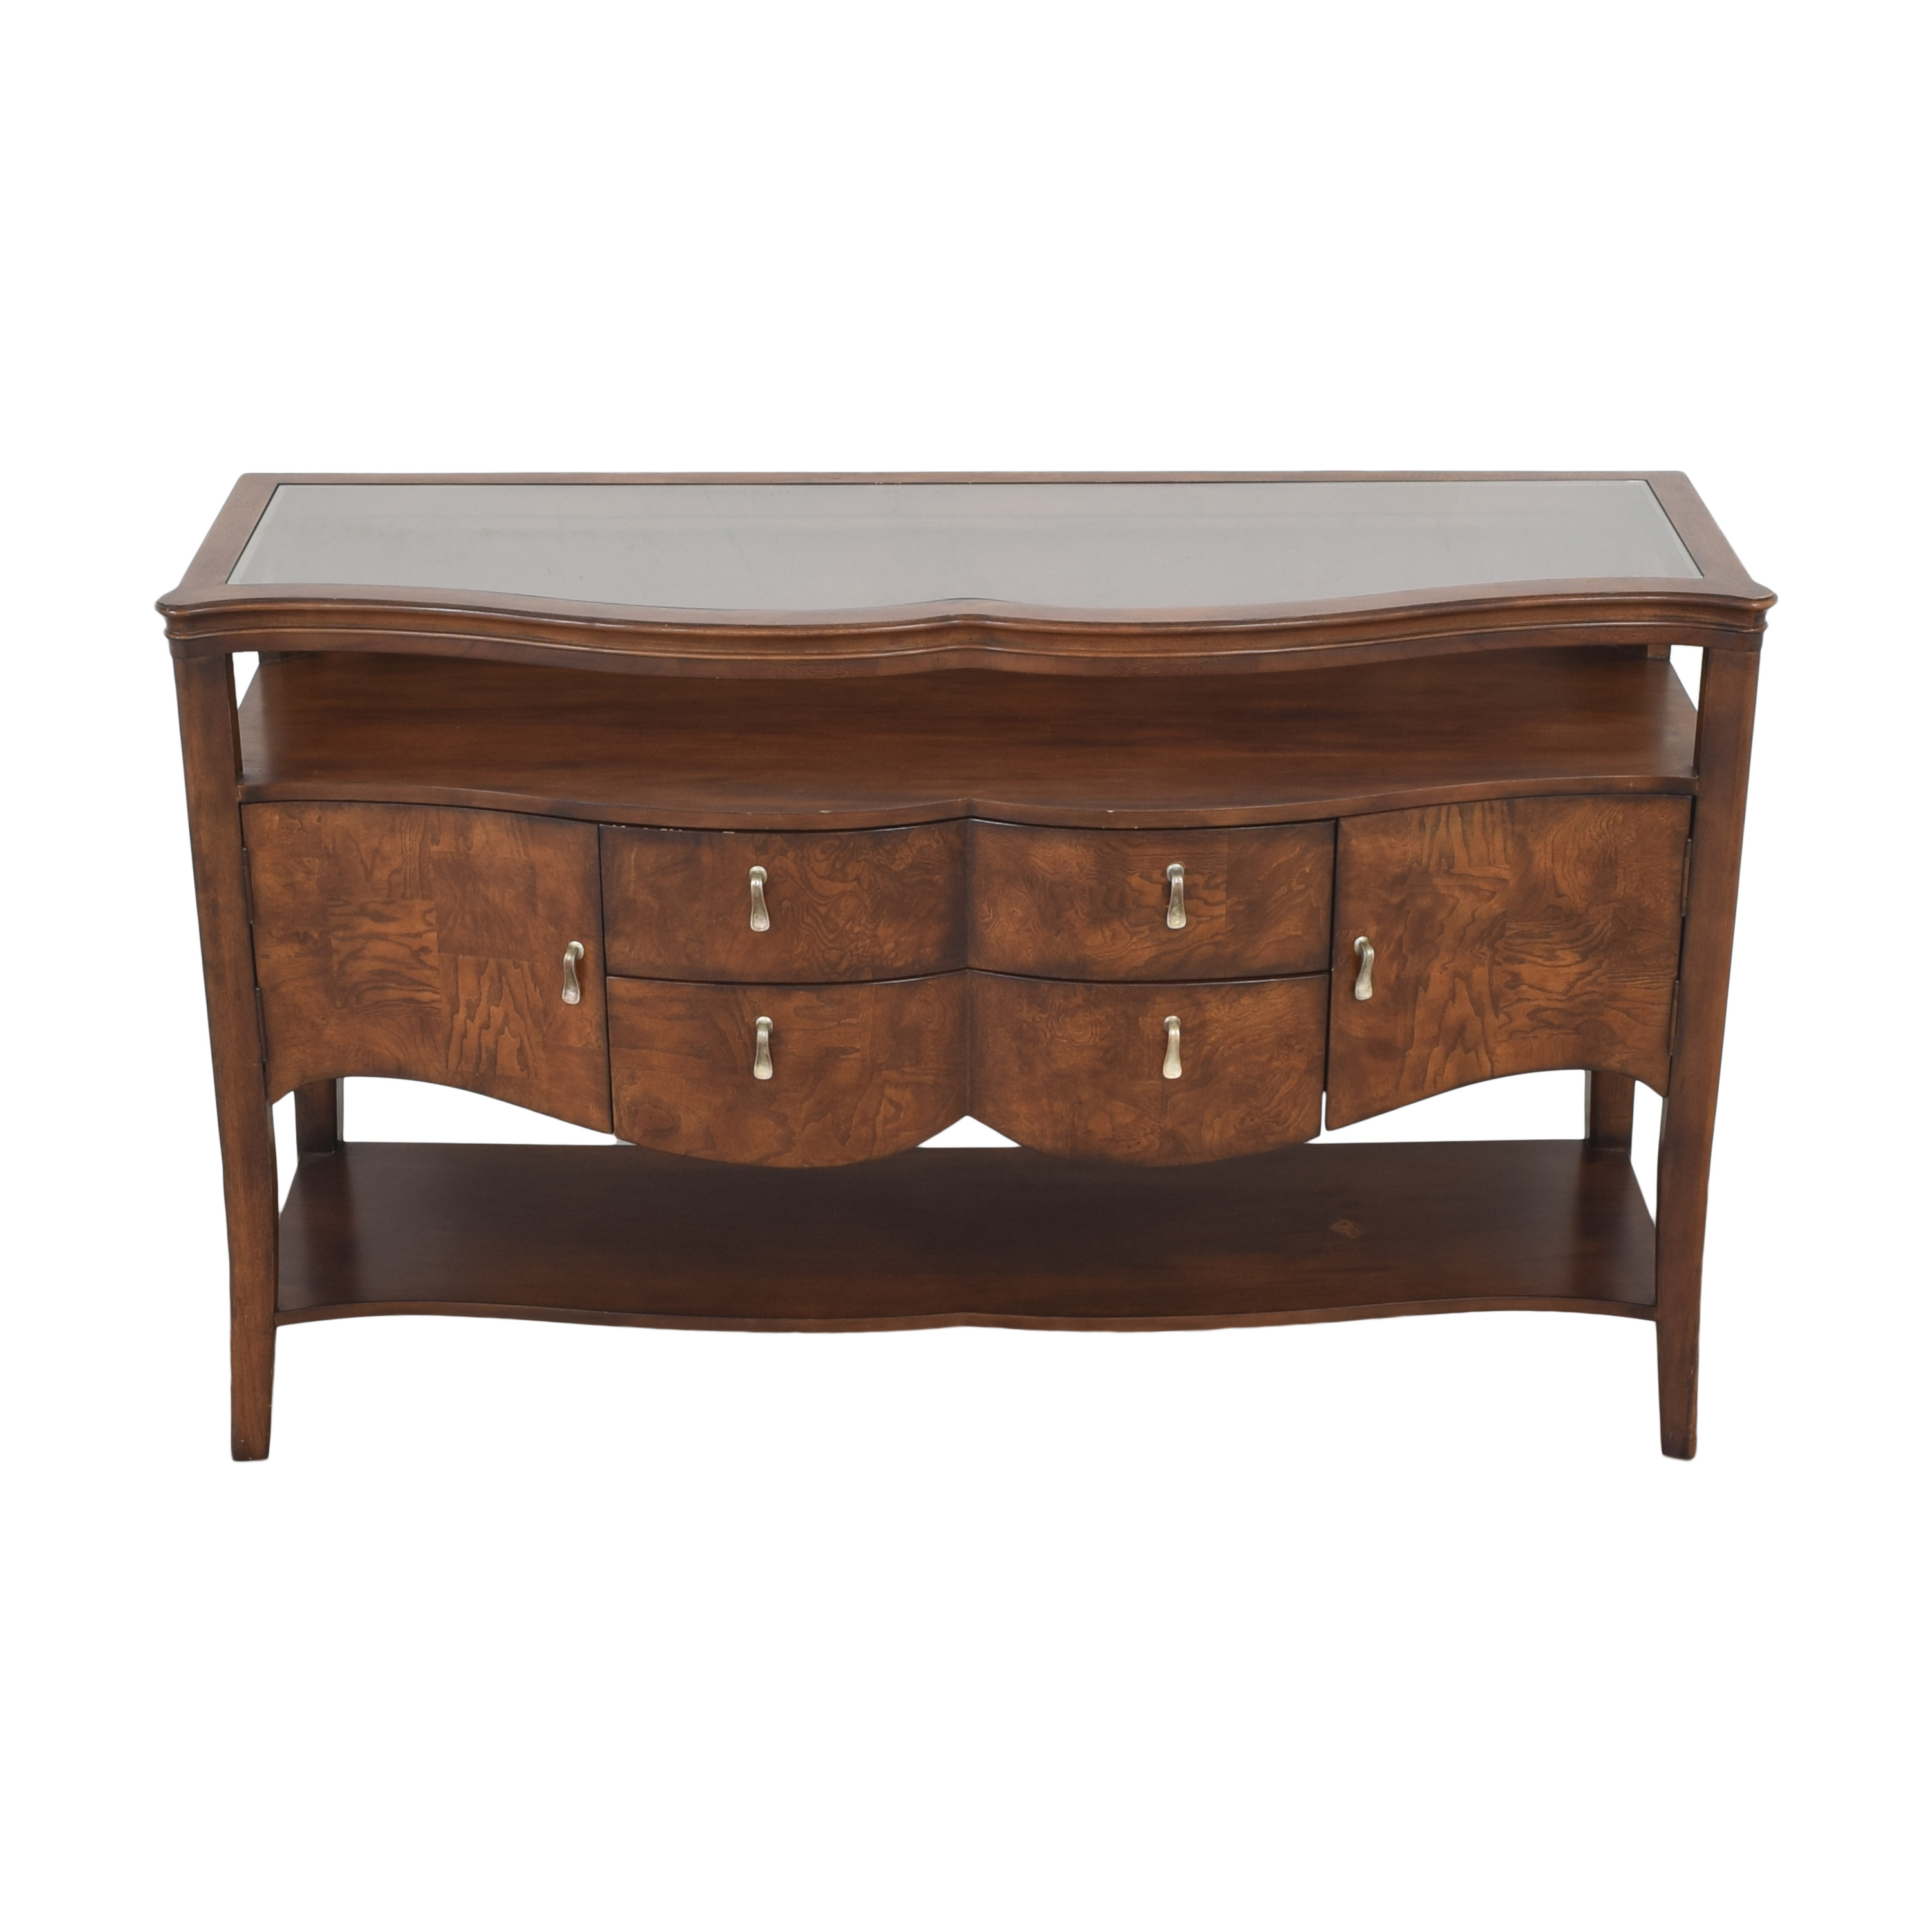 Raymour & Flanigan Raymour & Flanigan Credenza second hand